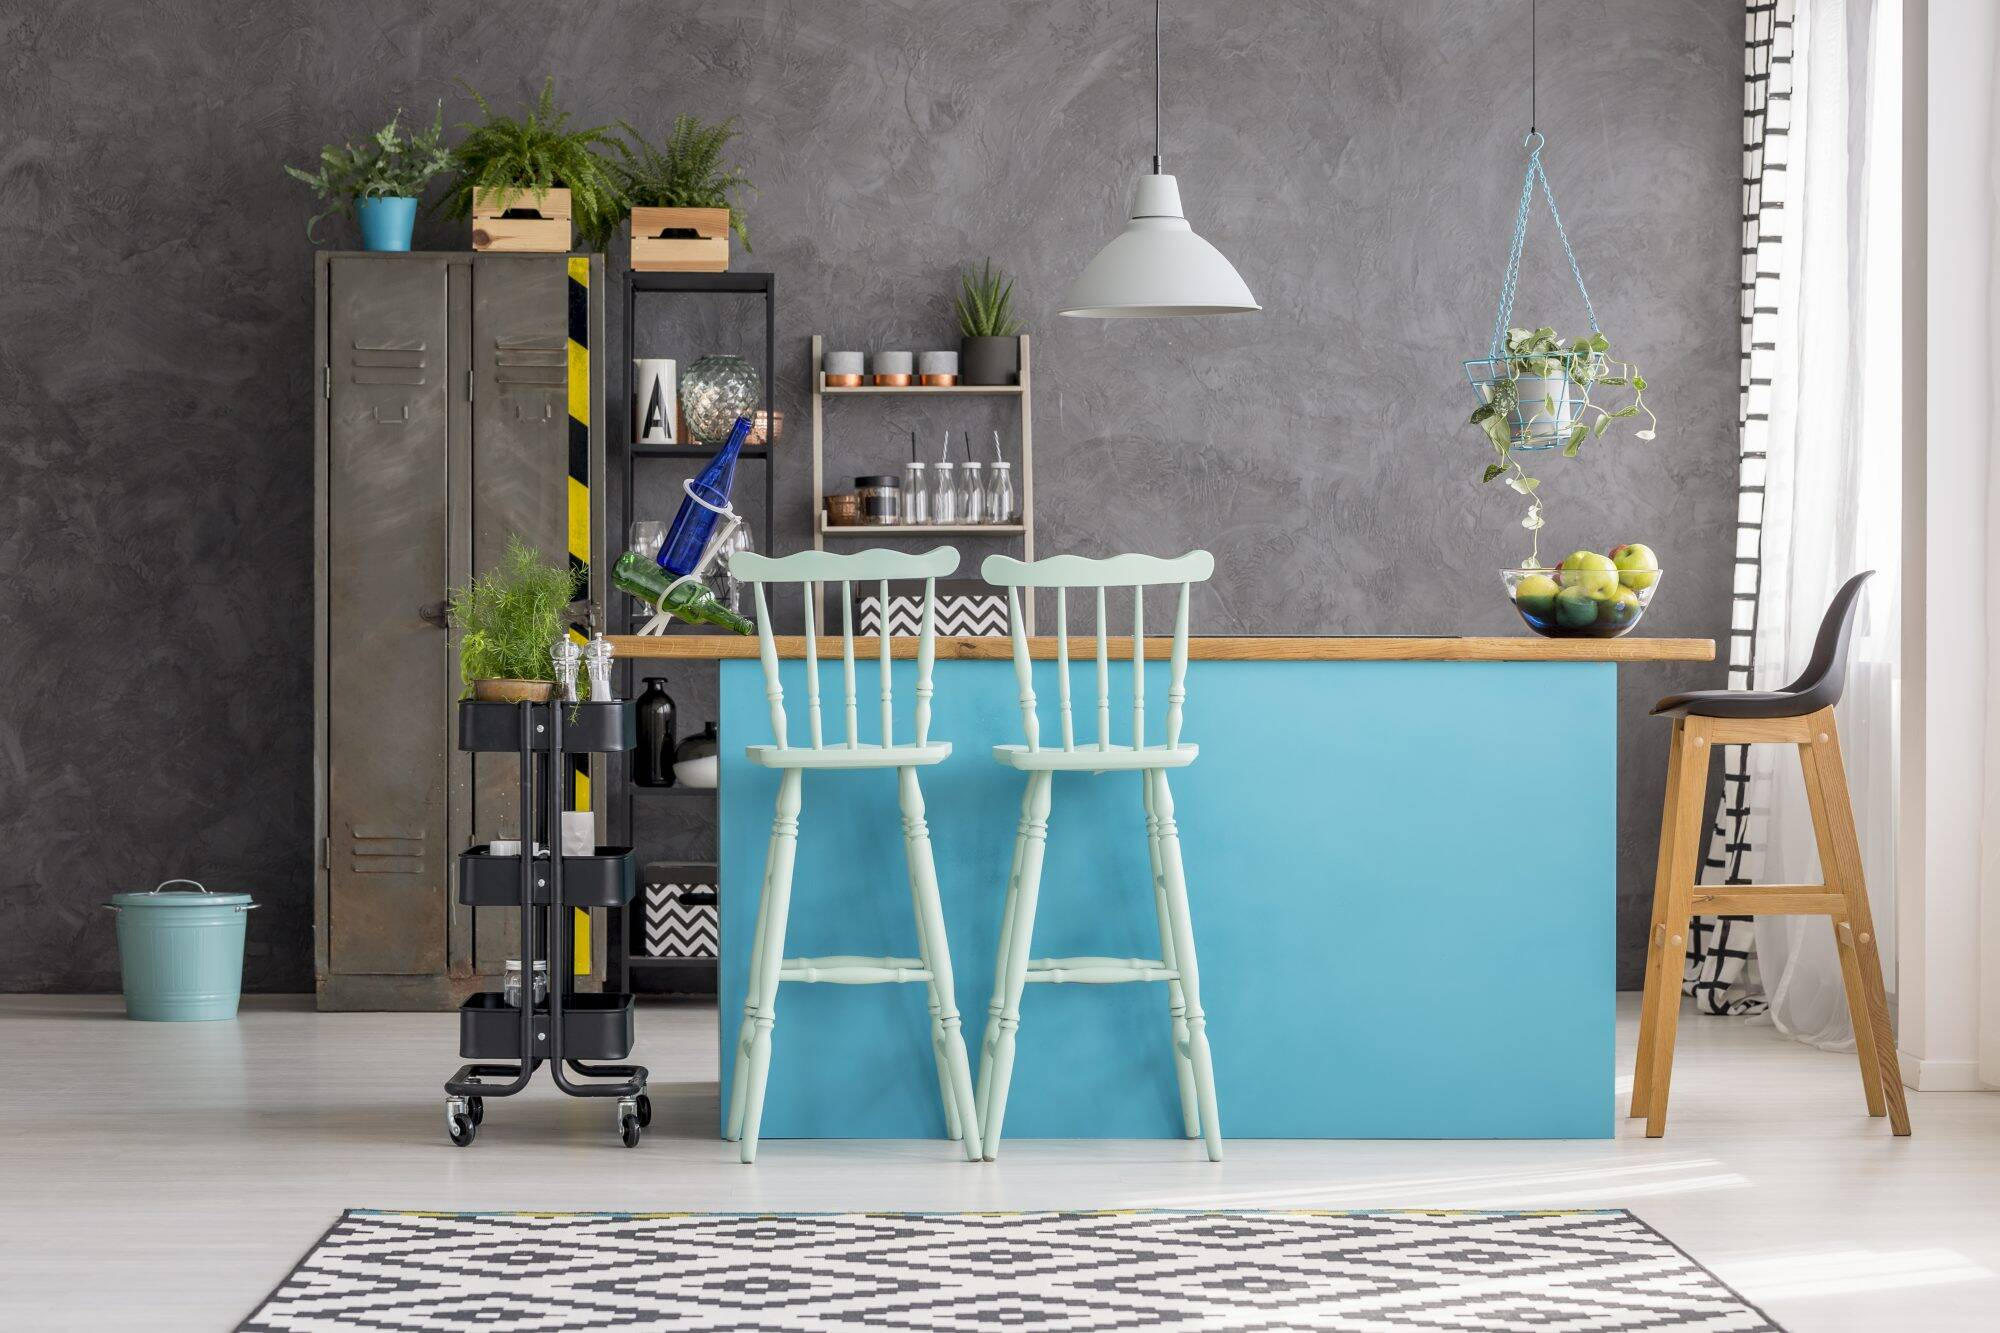 As These Photos Show What Makes A Kitchen Great Is How You Organize It